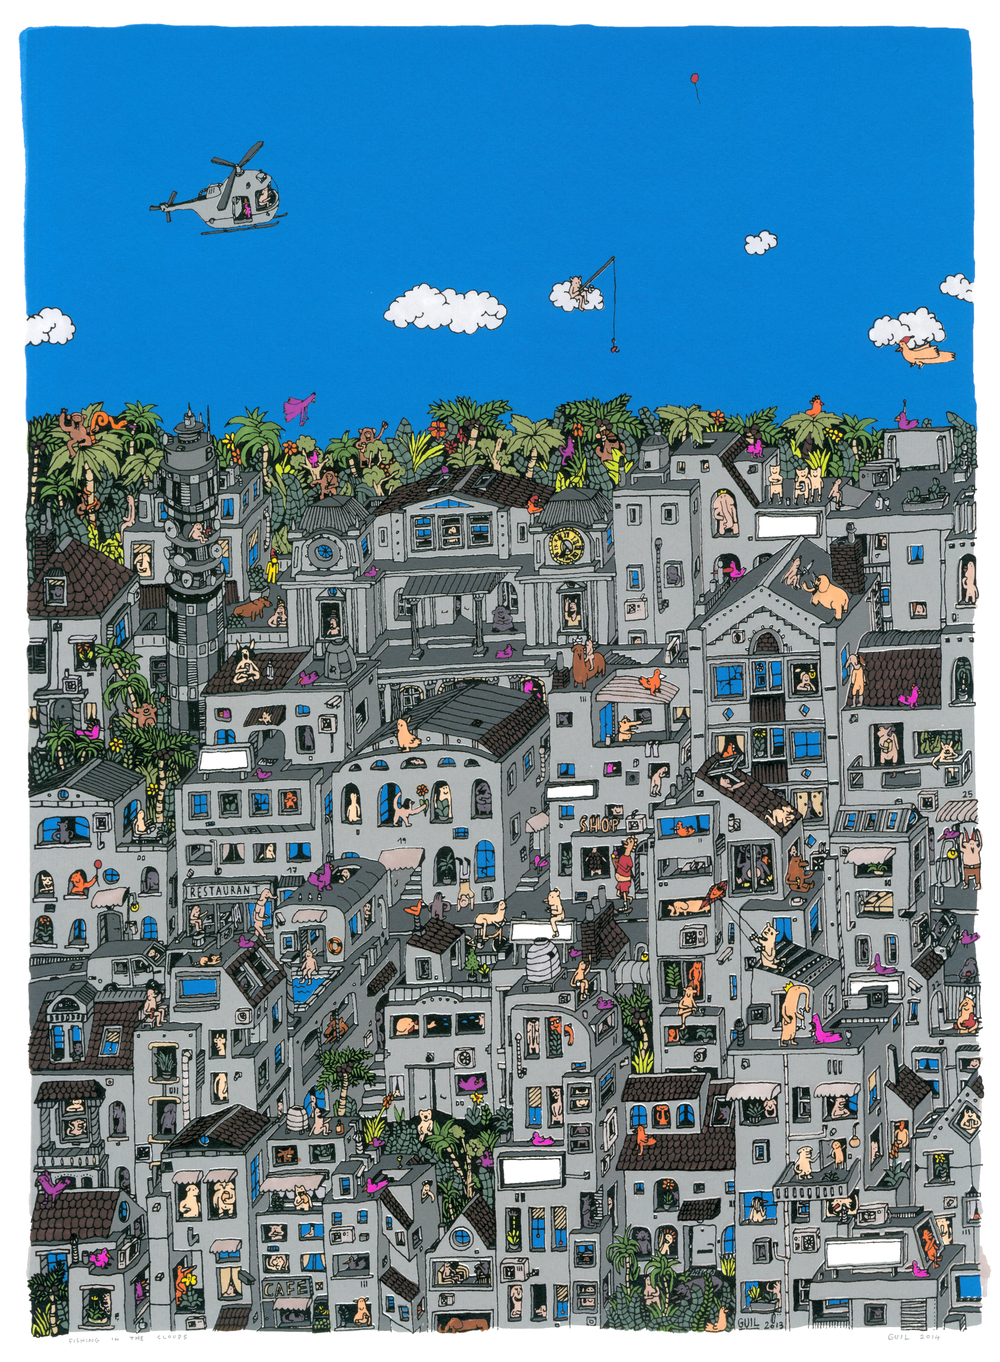 """Fishing in the Clouds, Pink Flying Chicken""  - 2014 - 5 layer hand made serigraph, hand-colored with Letraset markers and mixed media, on 270gsm. Colorset white paper Unique edition of 10  - 20 x 14 inches / 50 x 35 cm"